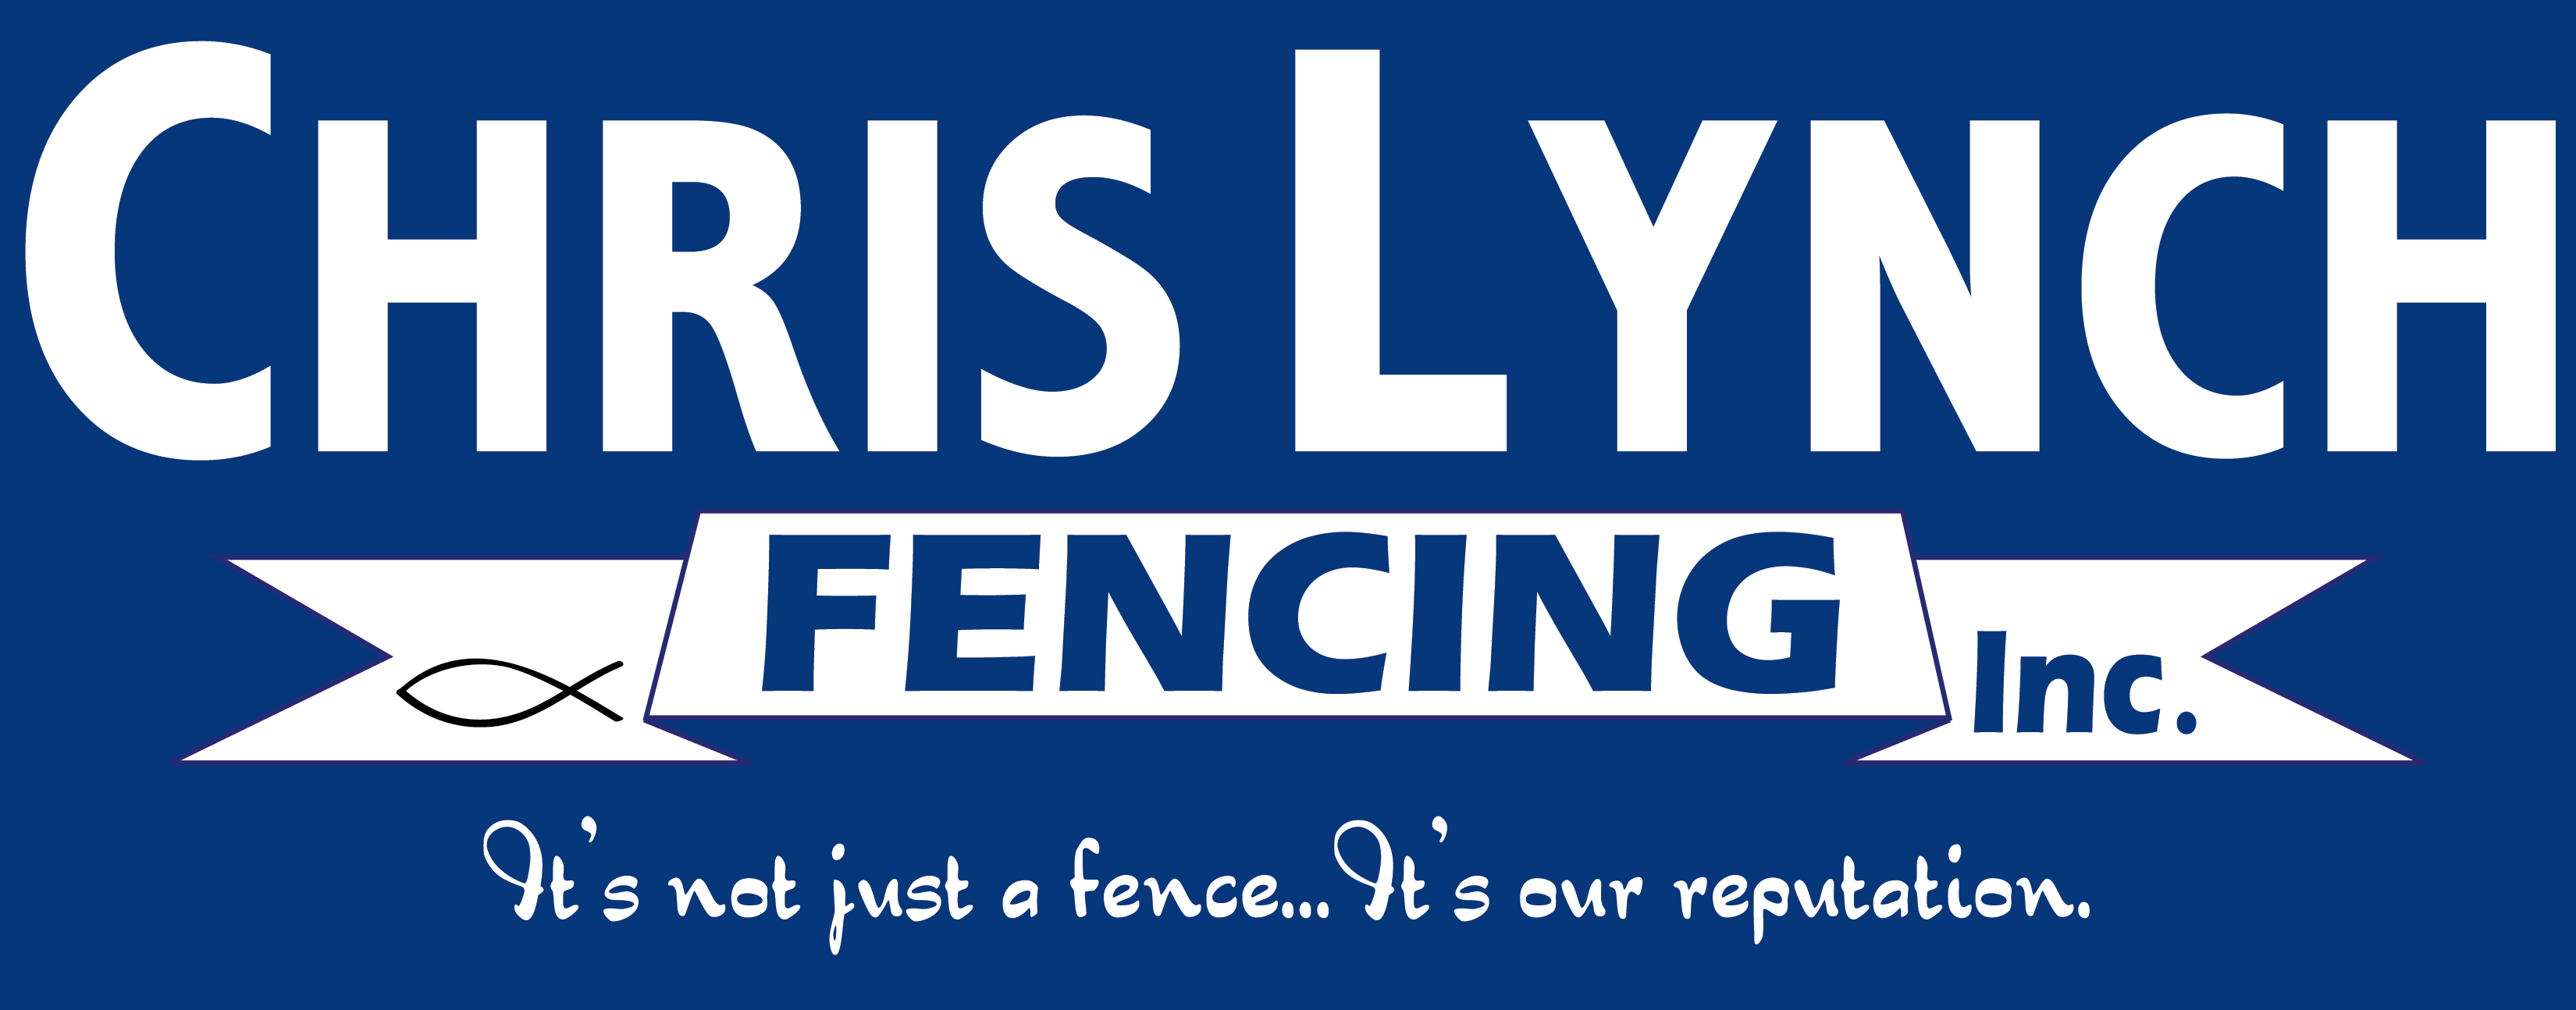 Chris Lynch Fencing